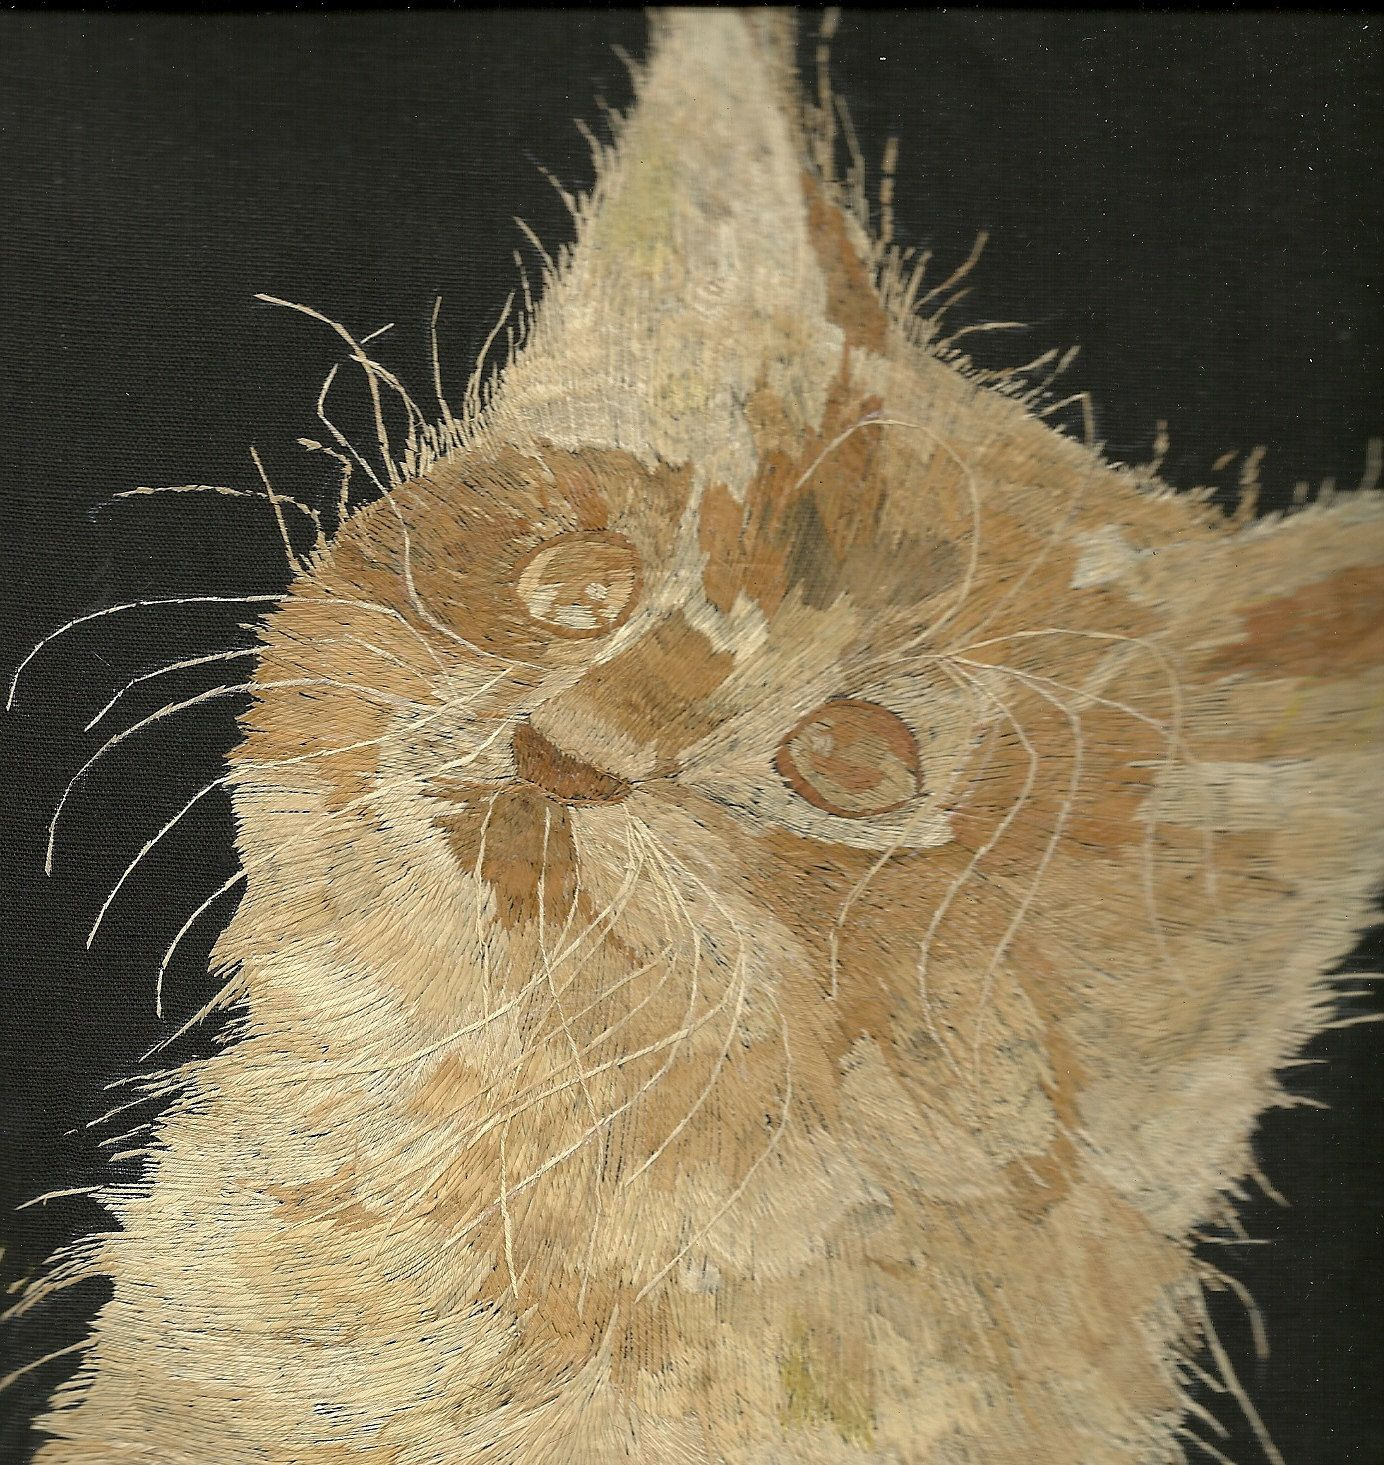 CAT Handmade leaf art   Not a print, photo or painting Leaf art of CAT by museumshop on Etsy